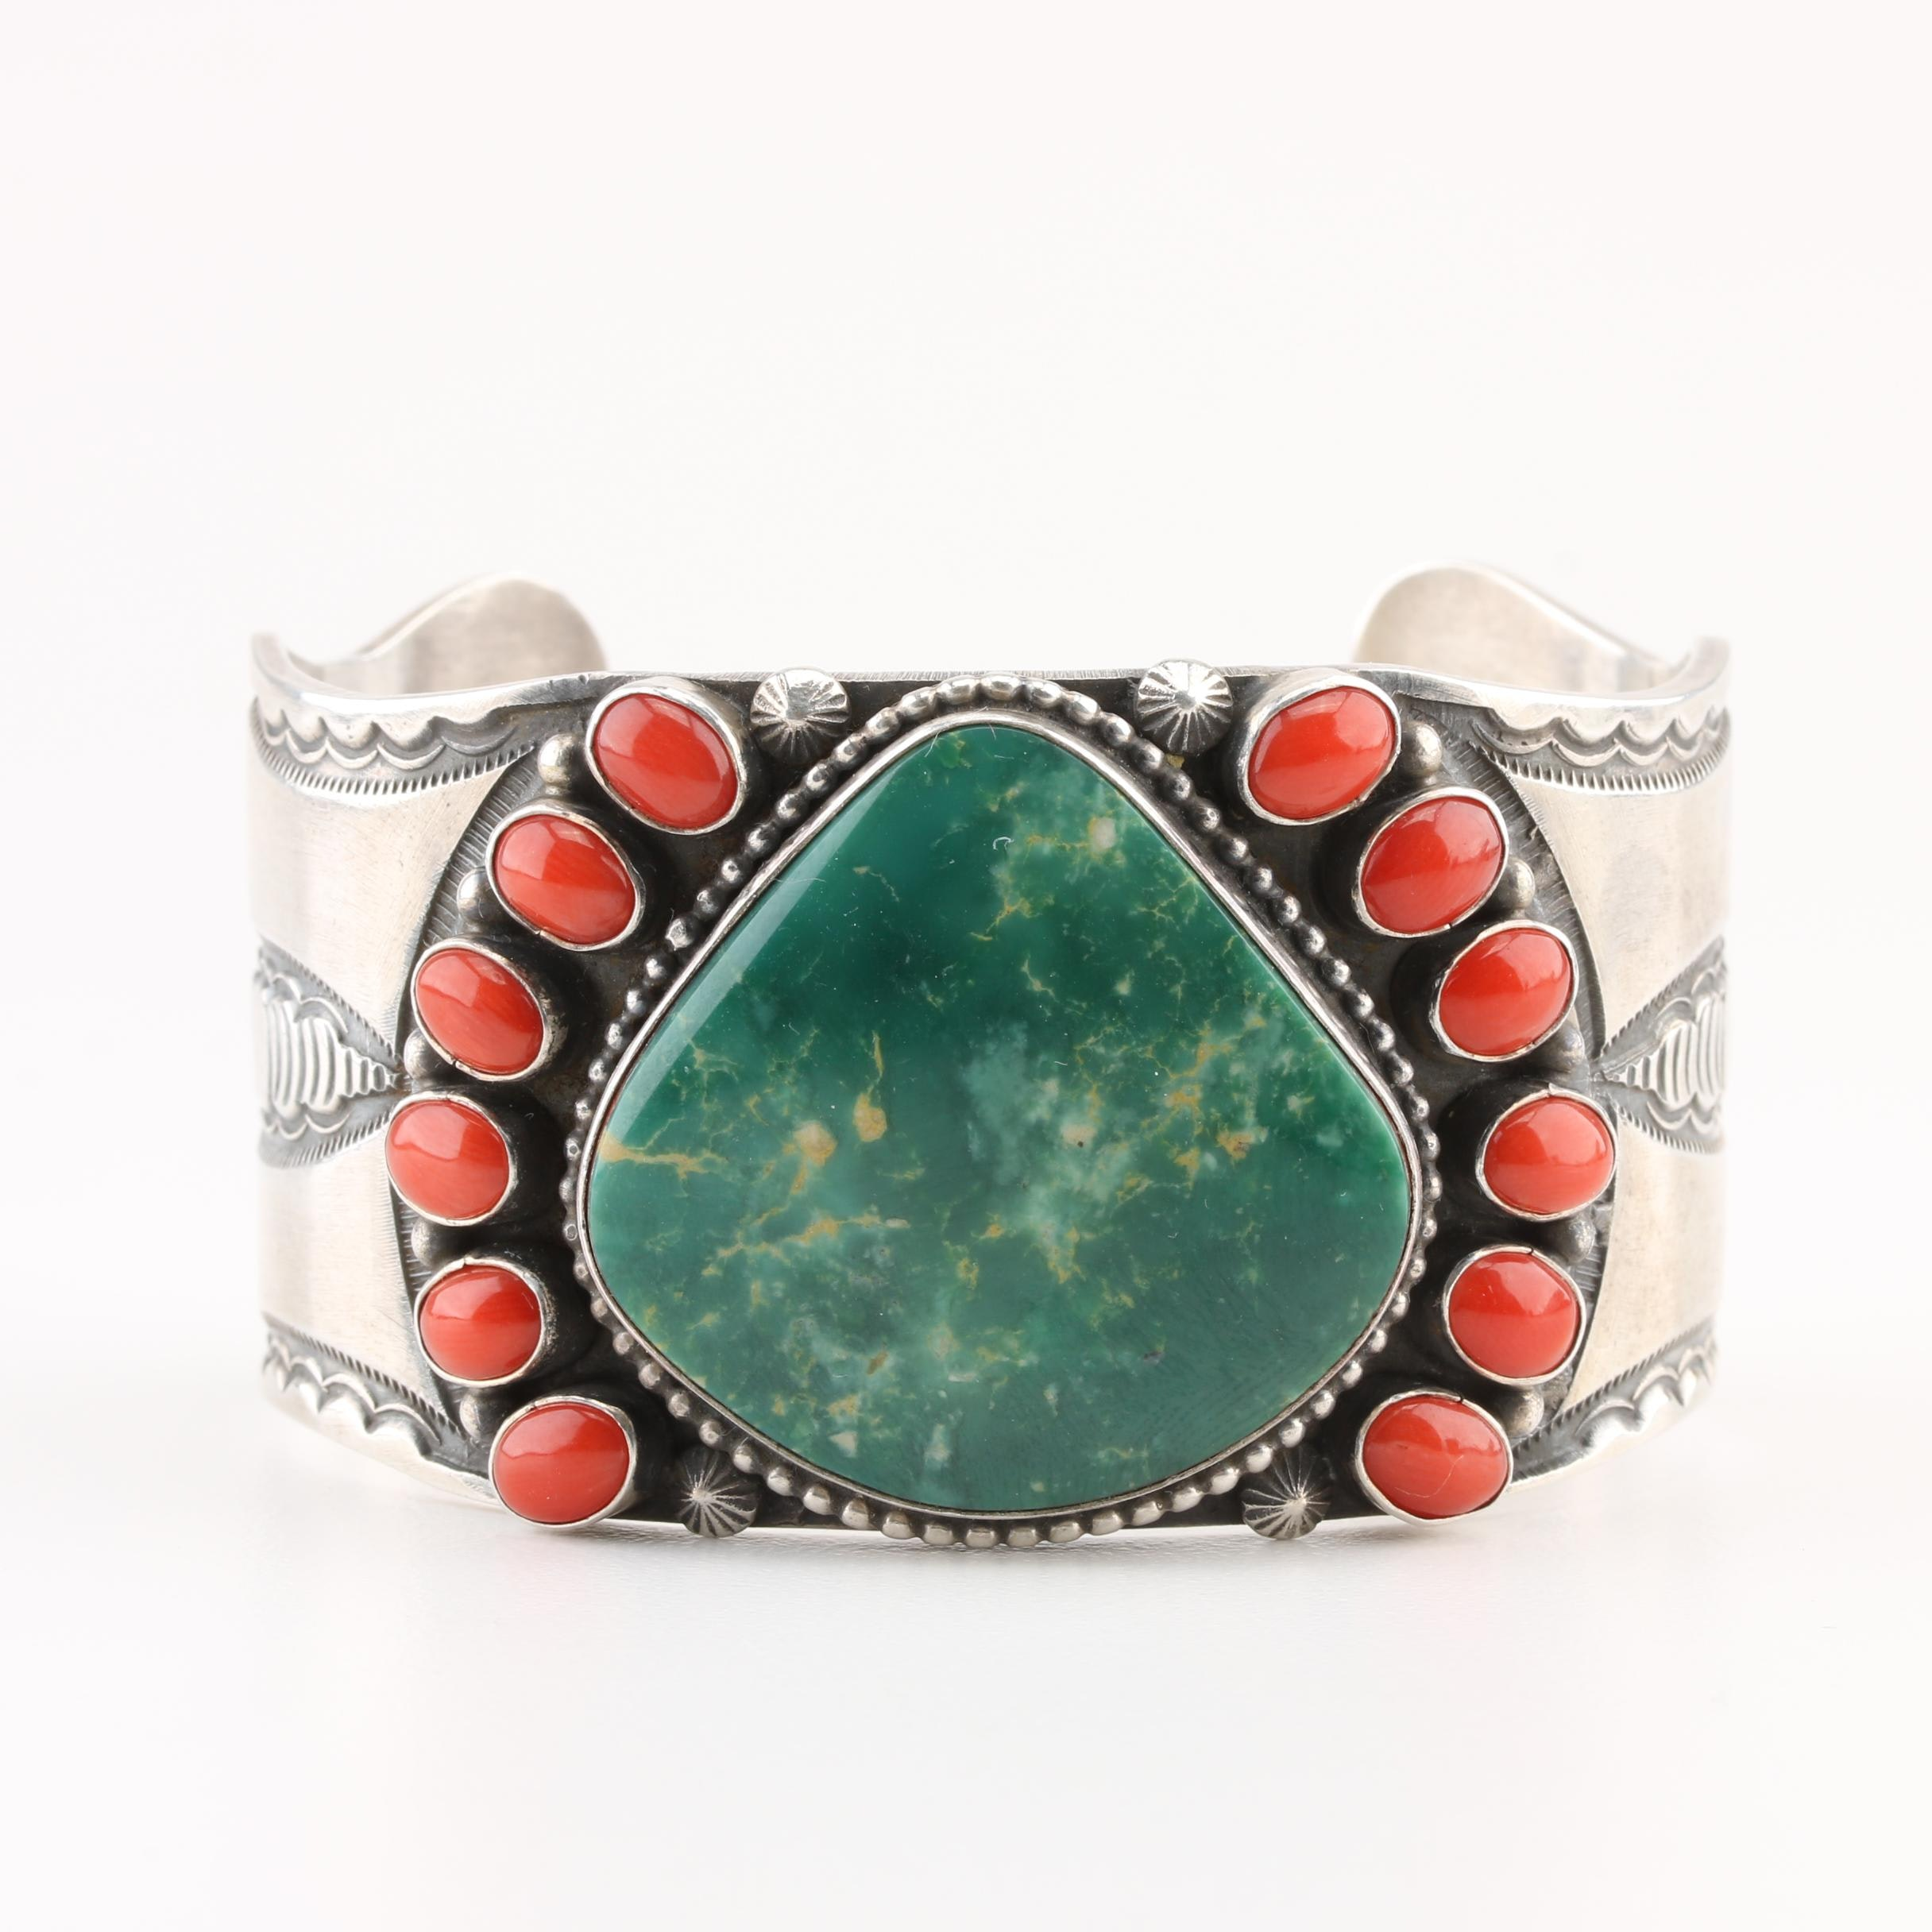 Rick Martinez Navajo Diné Sterling Silver Turquoise and Coral Cuff Bracelet